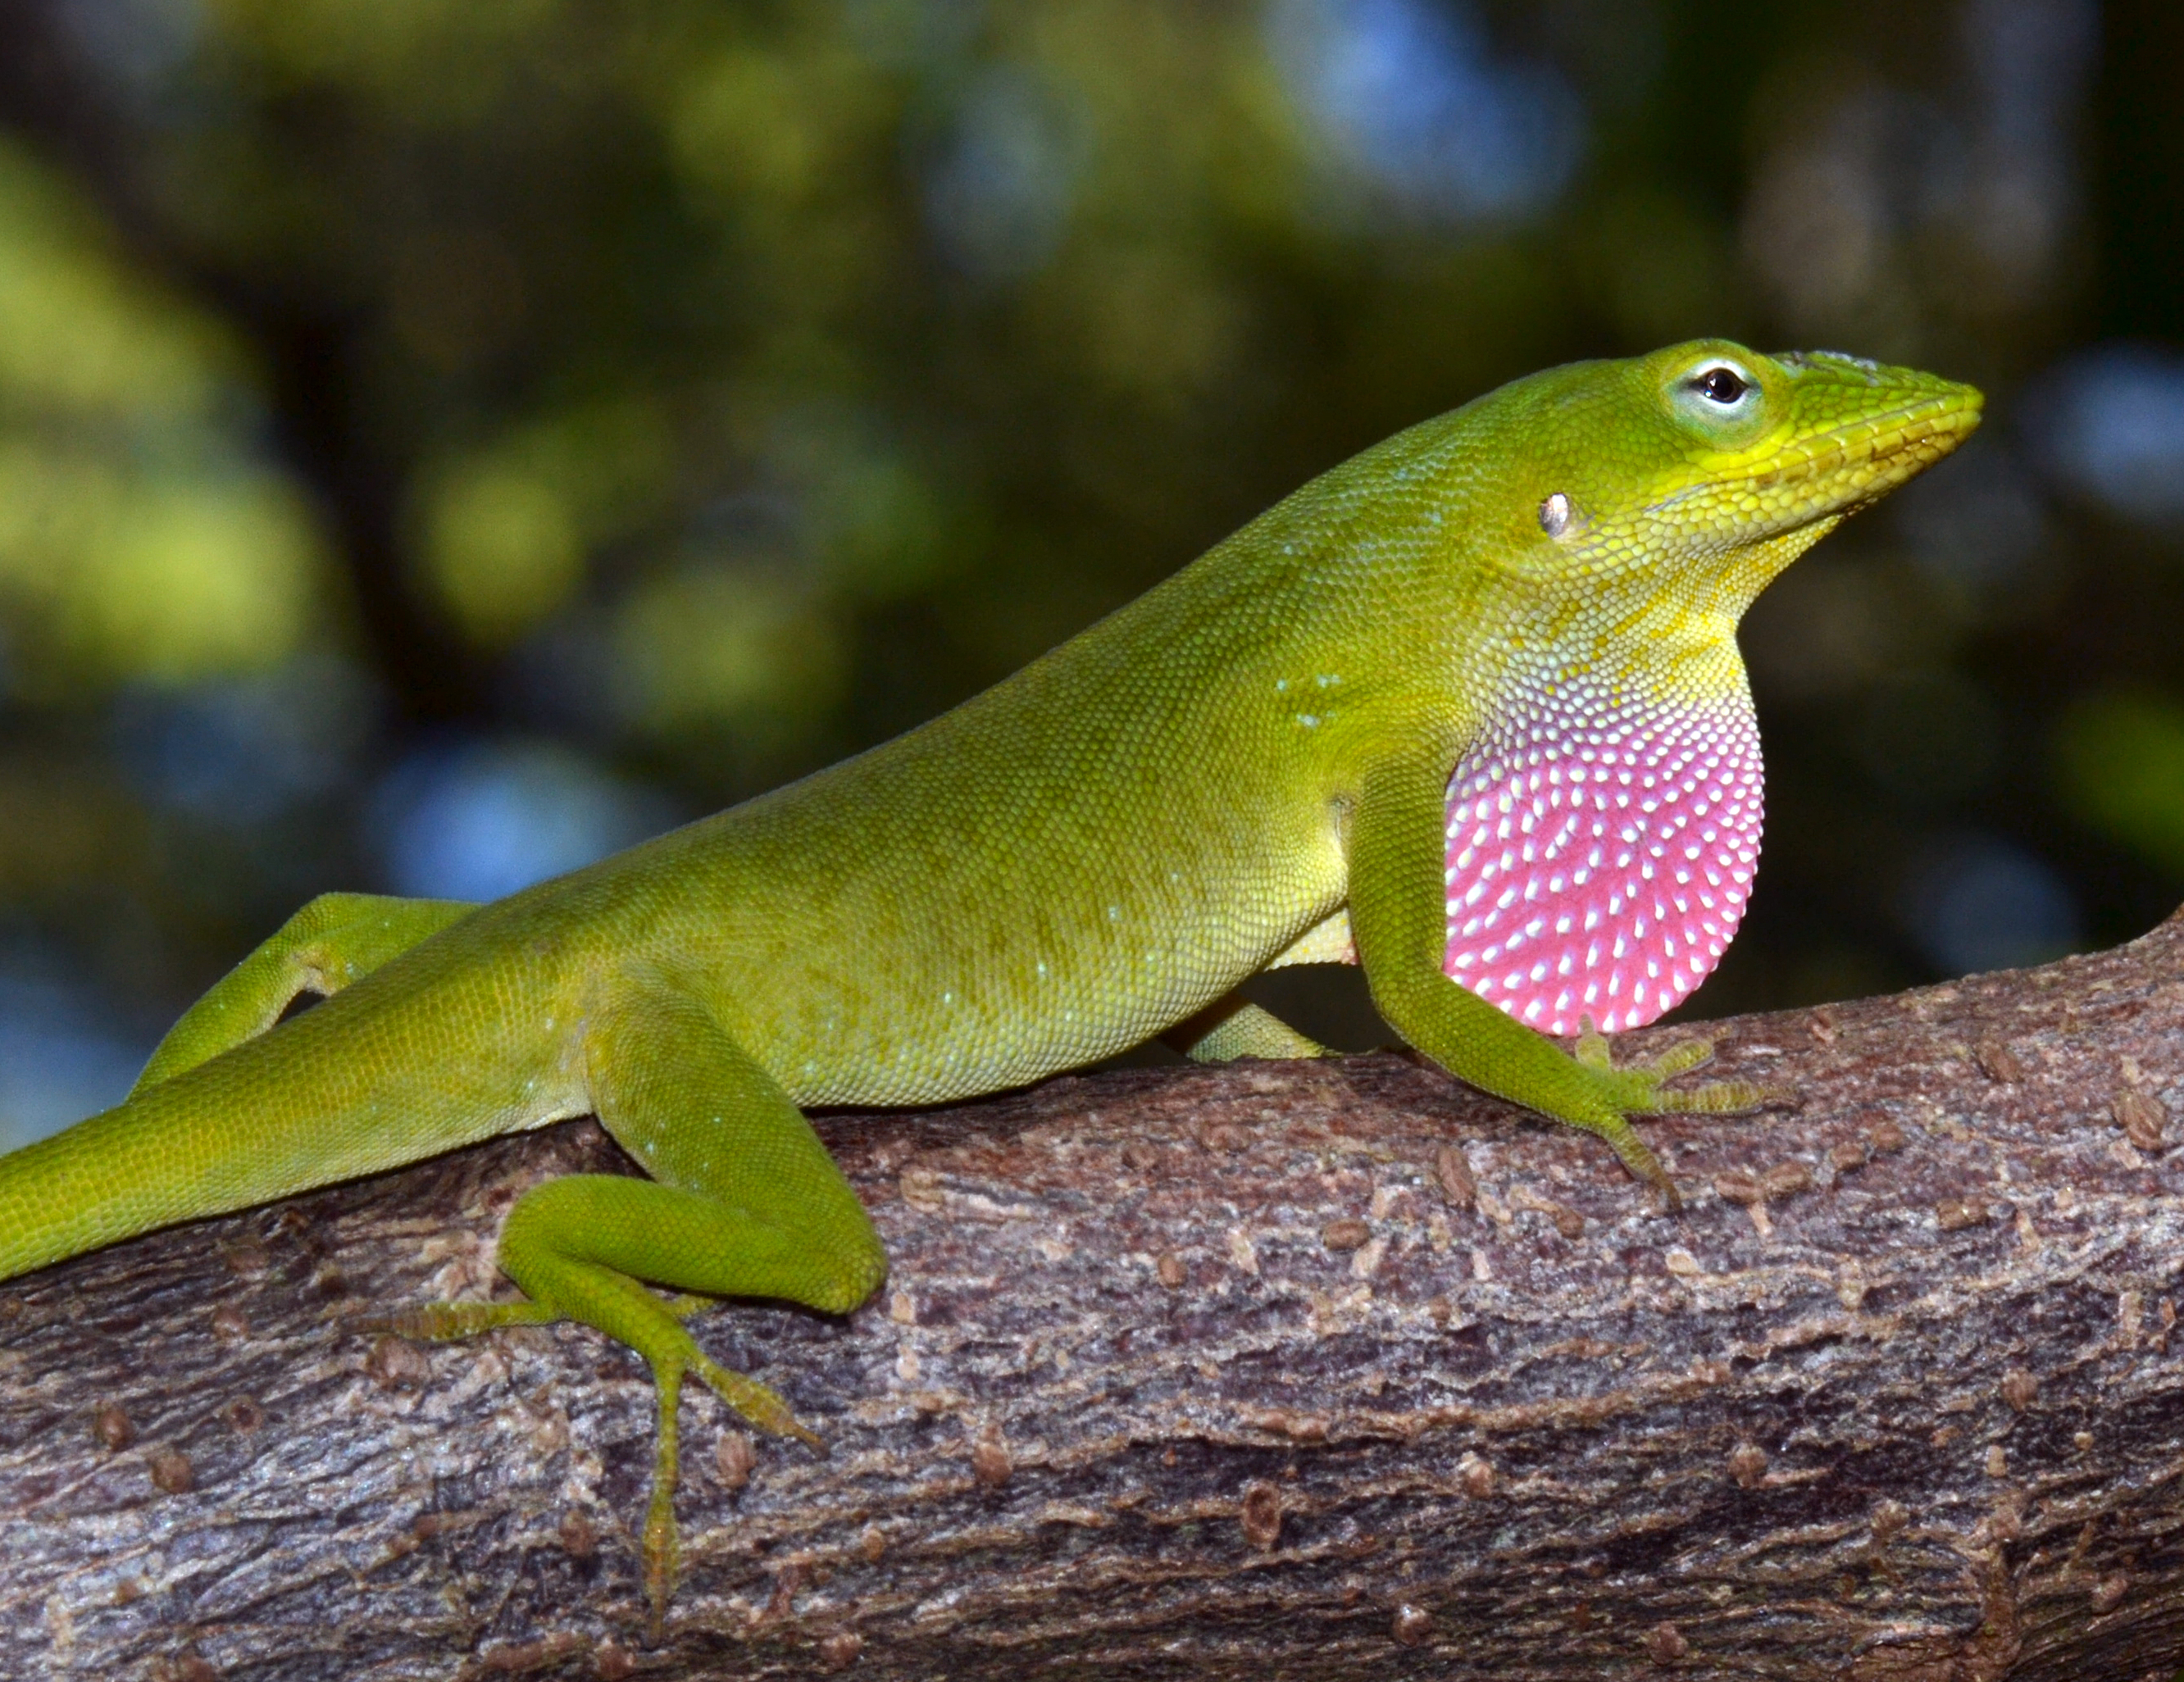 geographic variation in body size and cells in anolis carolinensis